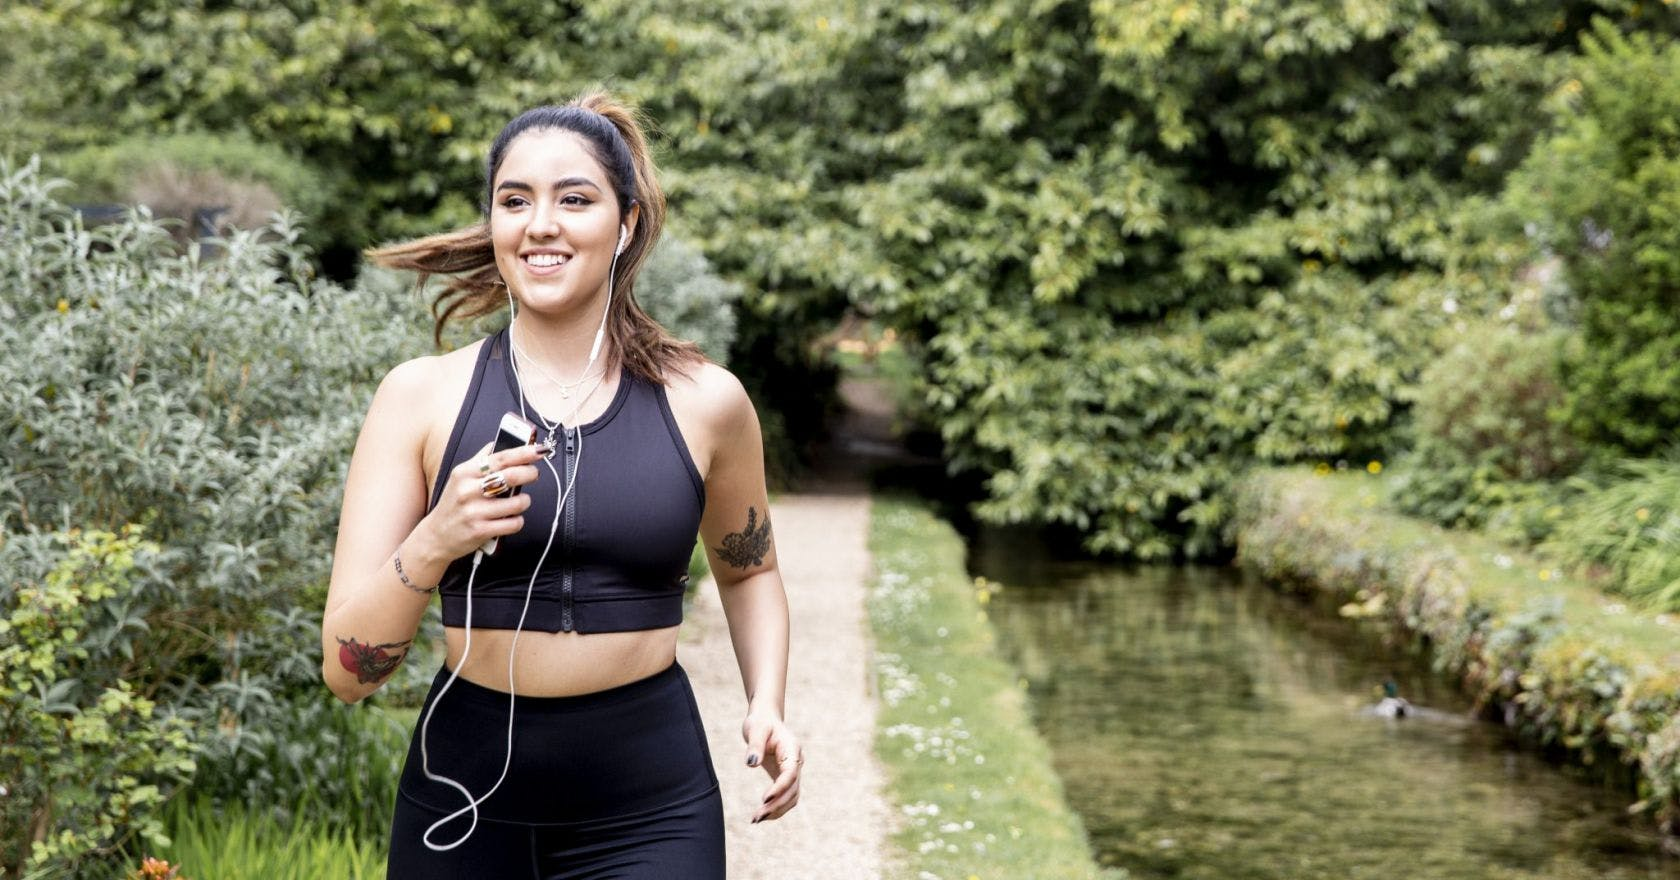 Running tips for beginners who want to give up after three minutes